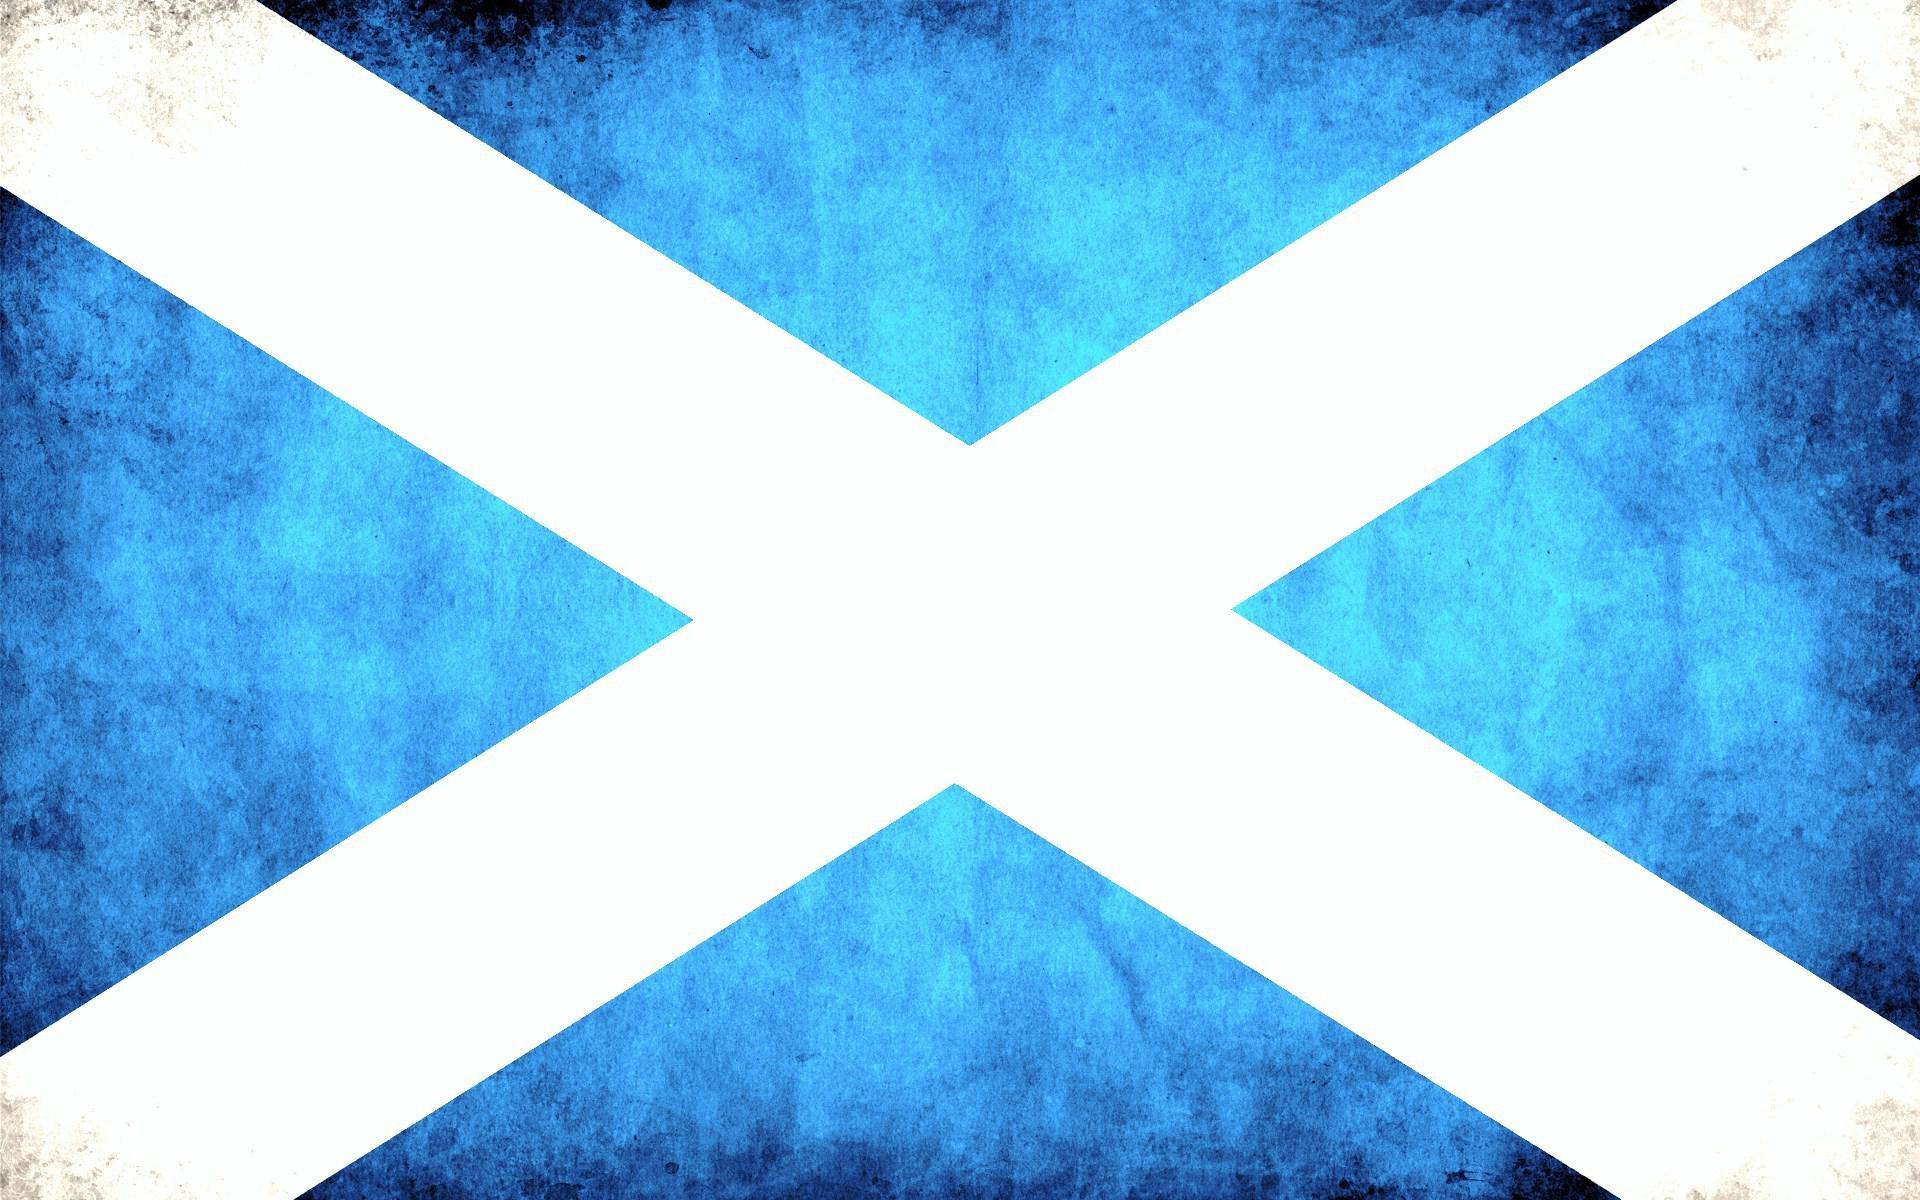 3d Moving Computer Wallpapers Free Download Hd Scotland Flag Wallpaper Download Free 138950